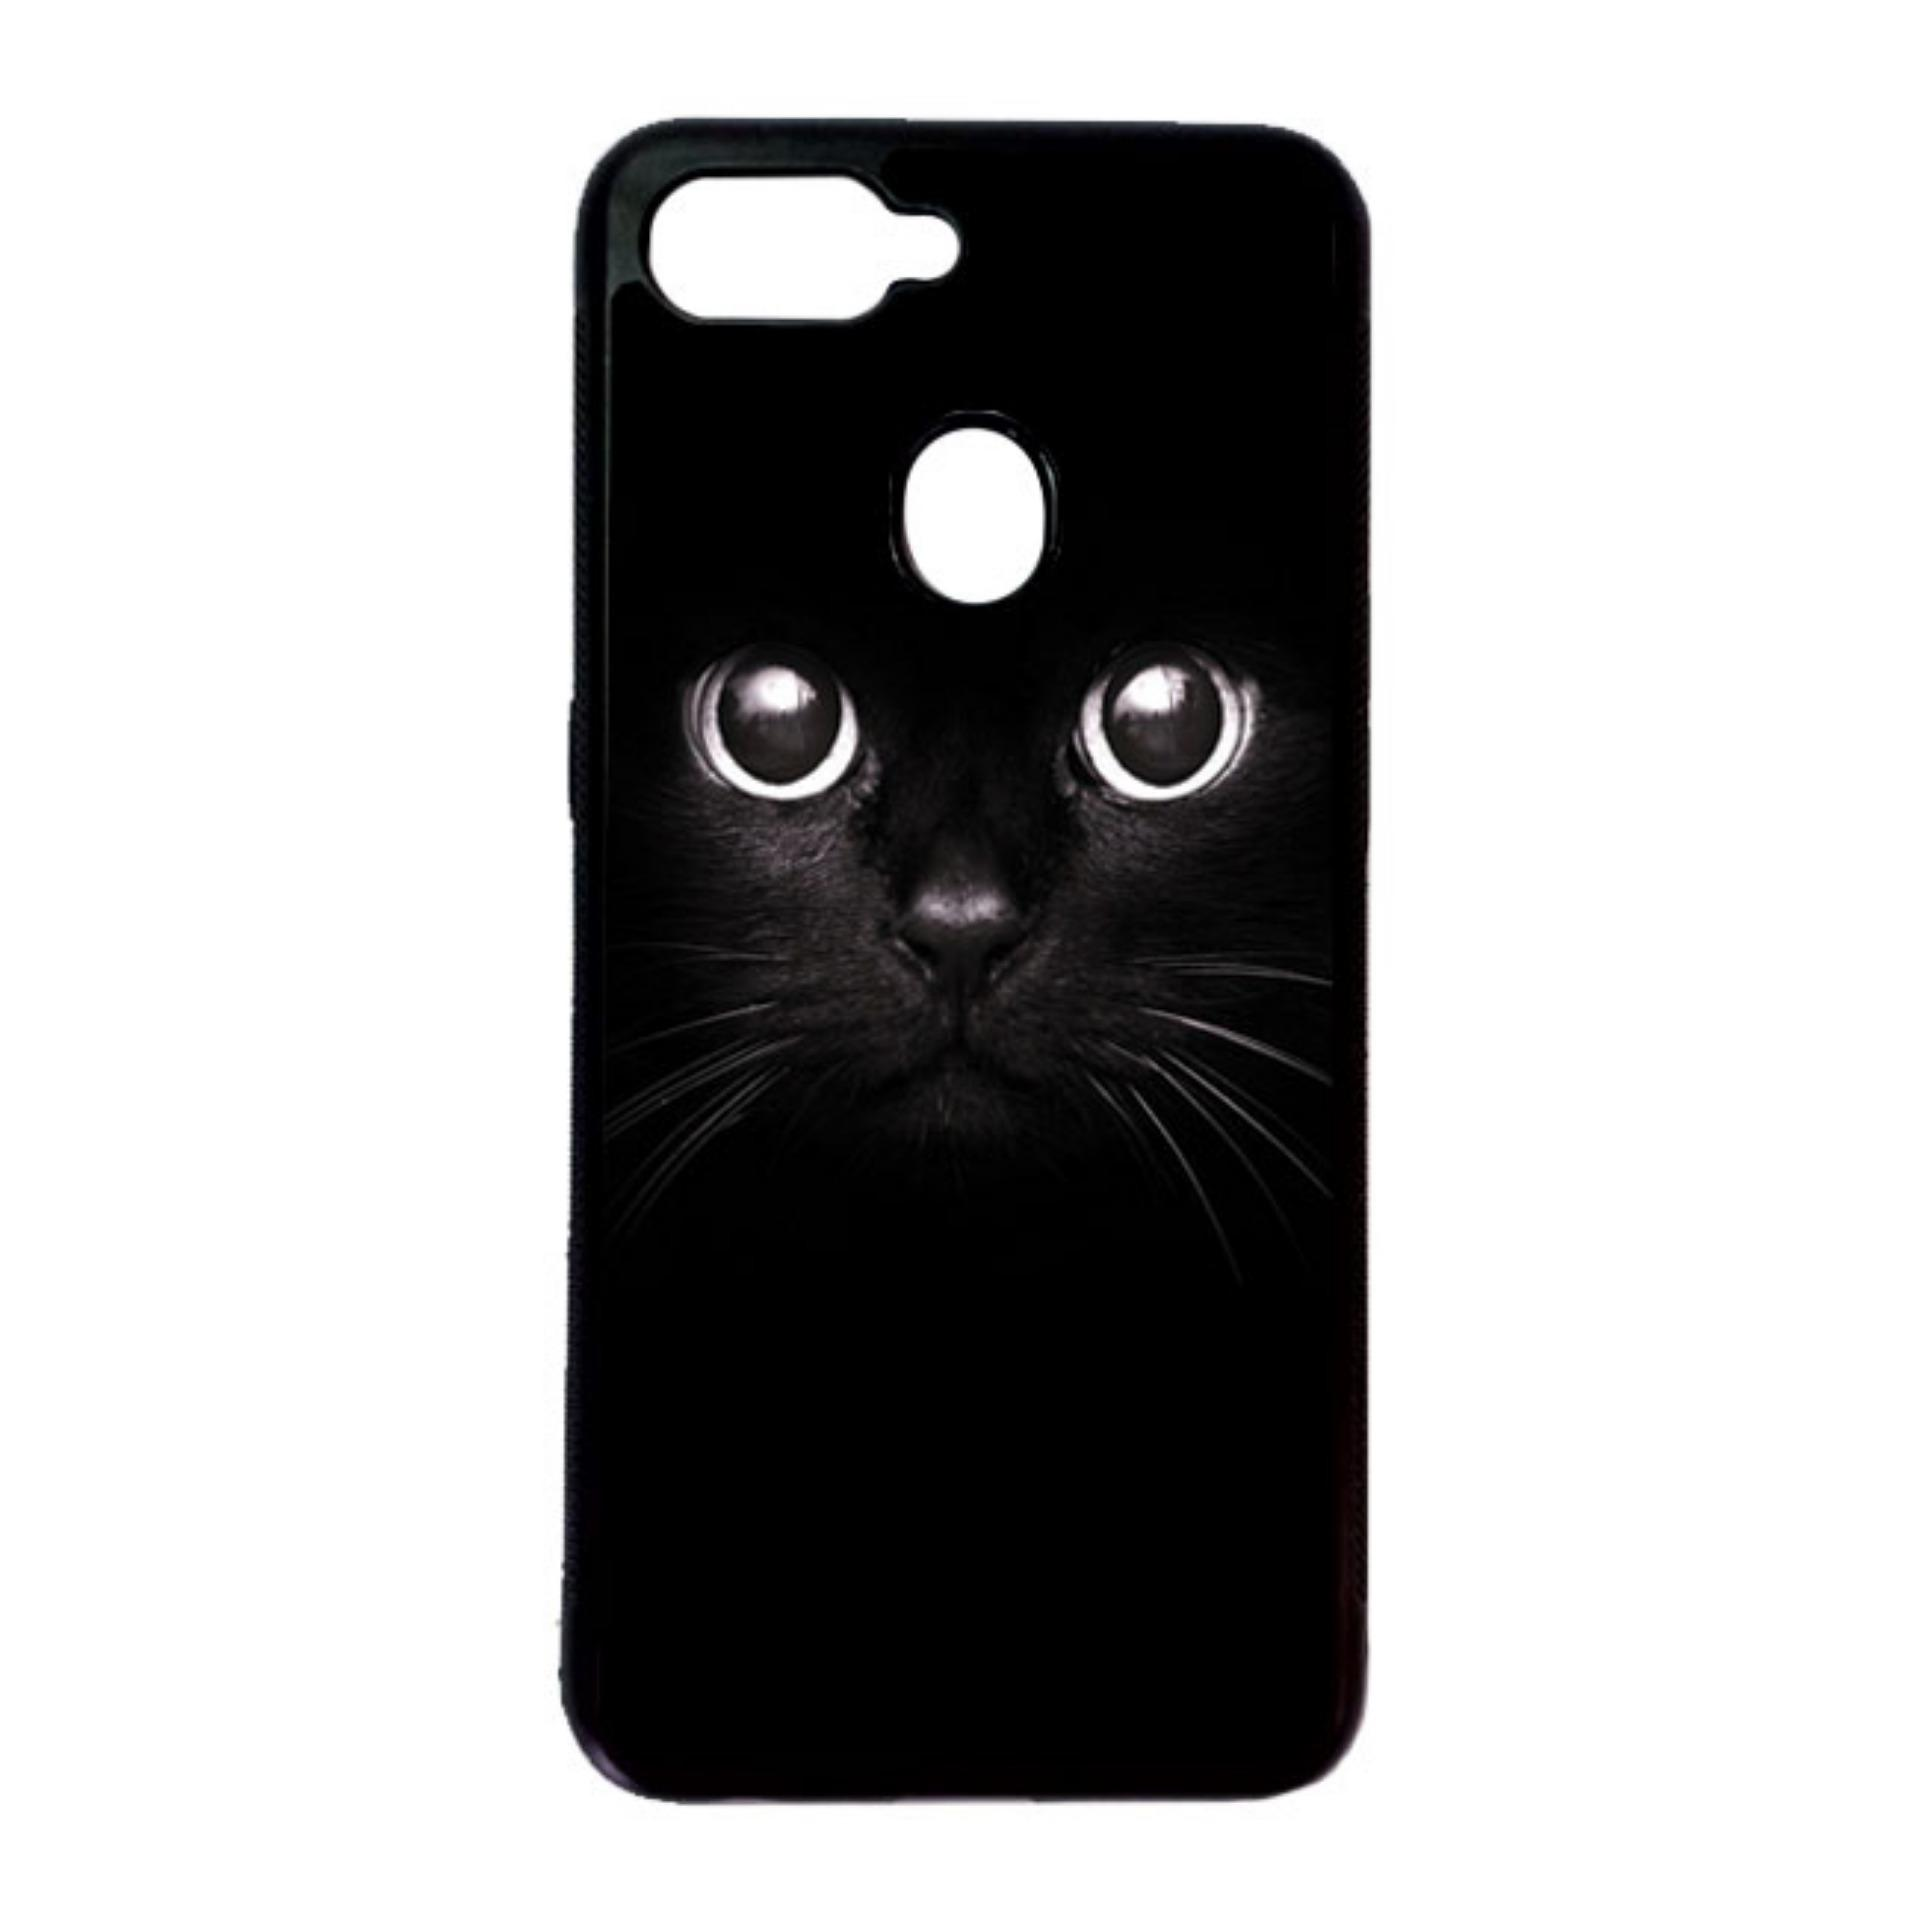 ... A39 Case Hardcase Motif Unik Cowo Cowok Tuxedo. Source · HEAVENCASE Casing Case Oppo F9 / F9 Pro Case Softcase Hitam Motif Kucing Hitam Black Cat